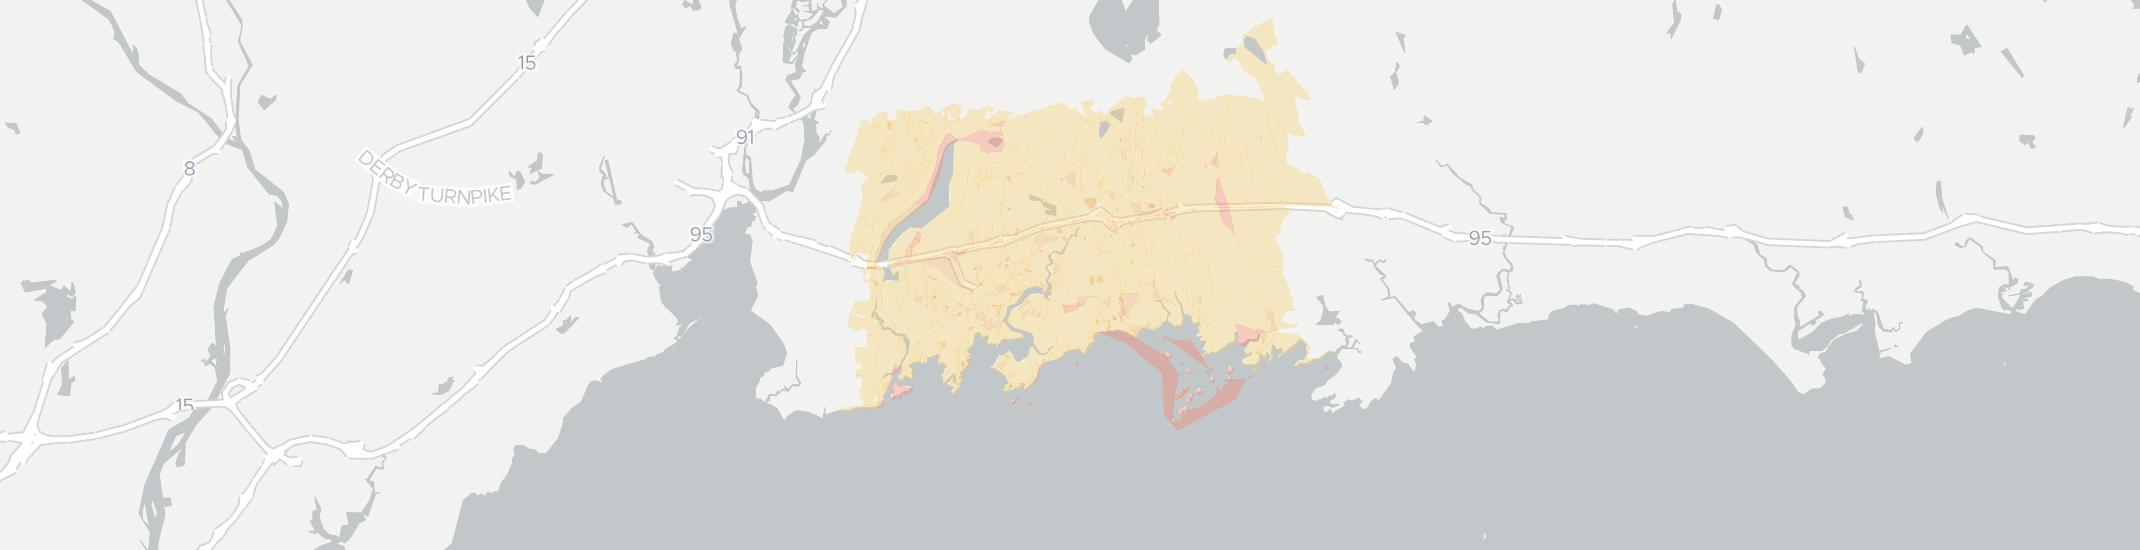 Branford Internet Competition Map. Click for interactive map.